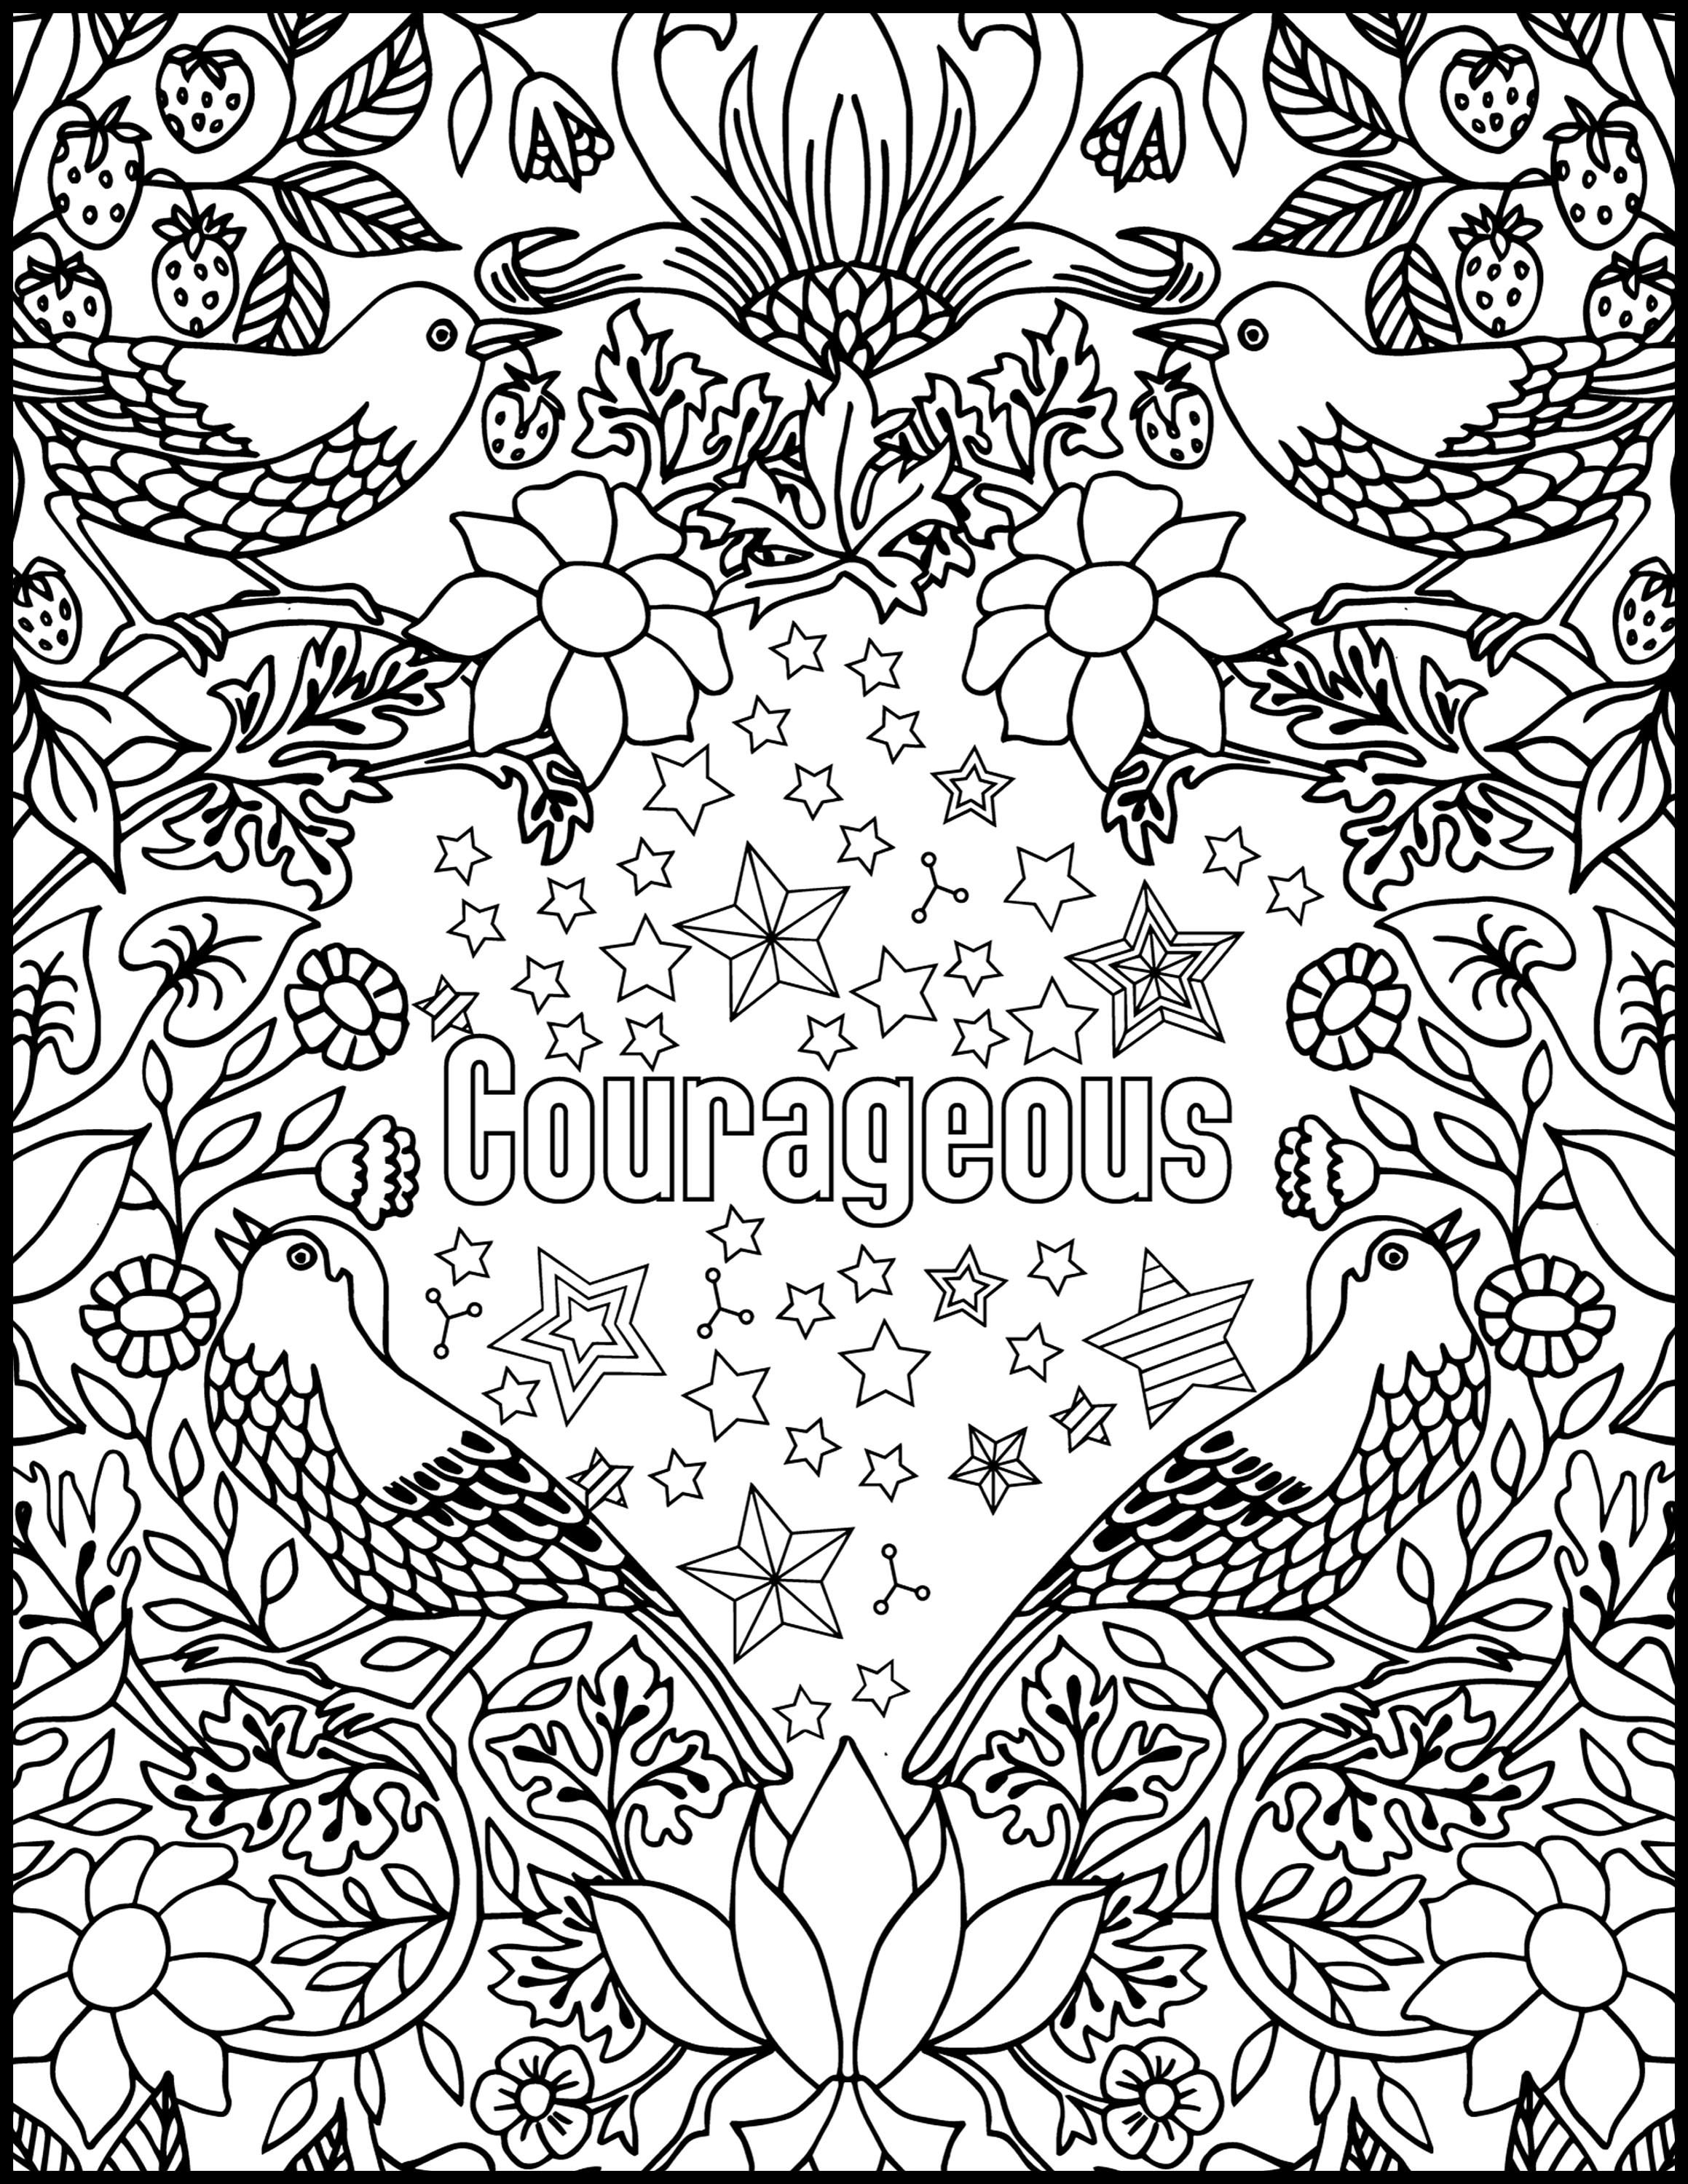 calm the f down coloring book pages Download-Courageous Positive Word Coloring Book Printable Coloring 17-j